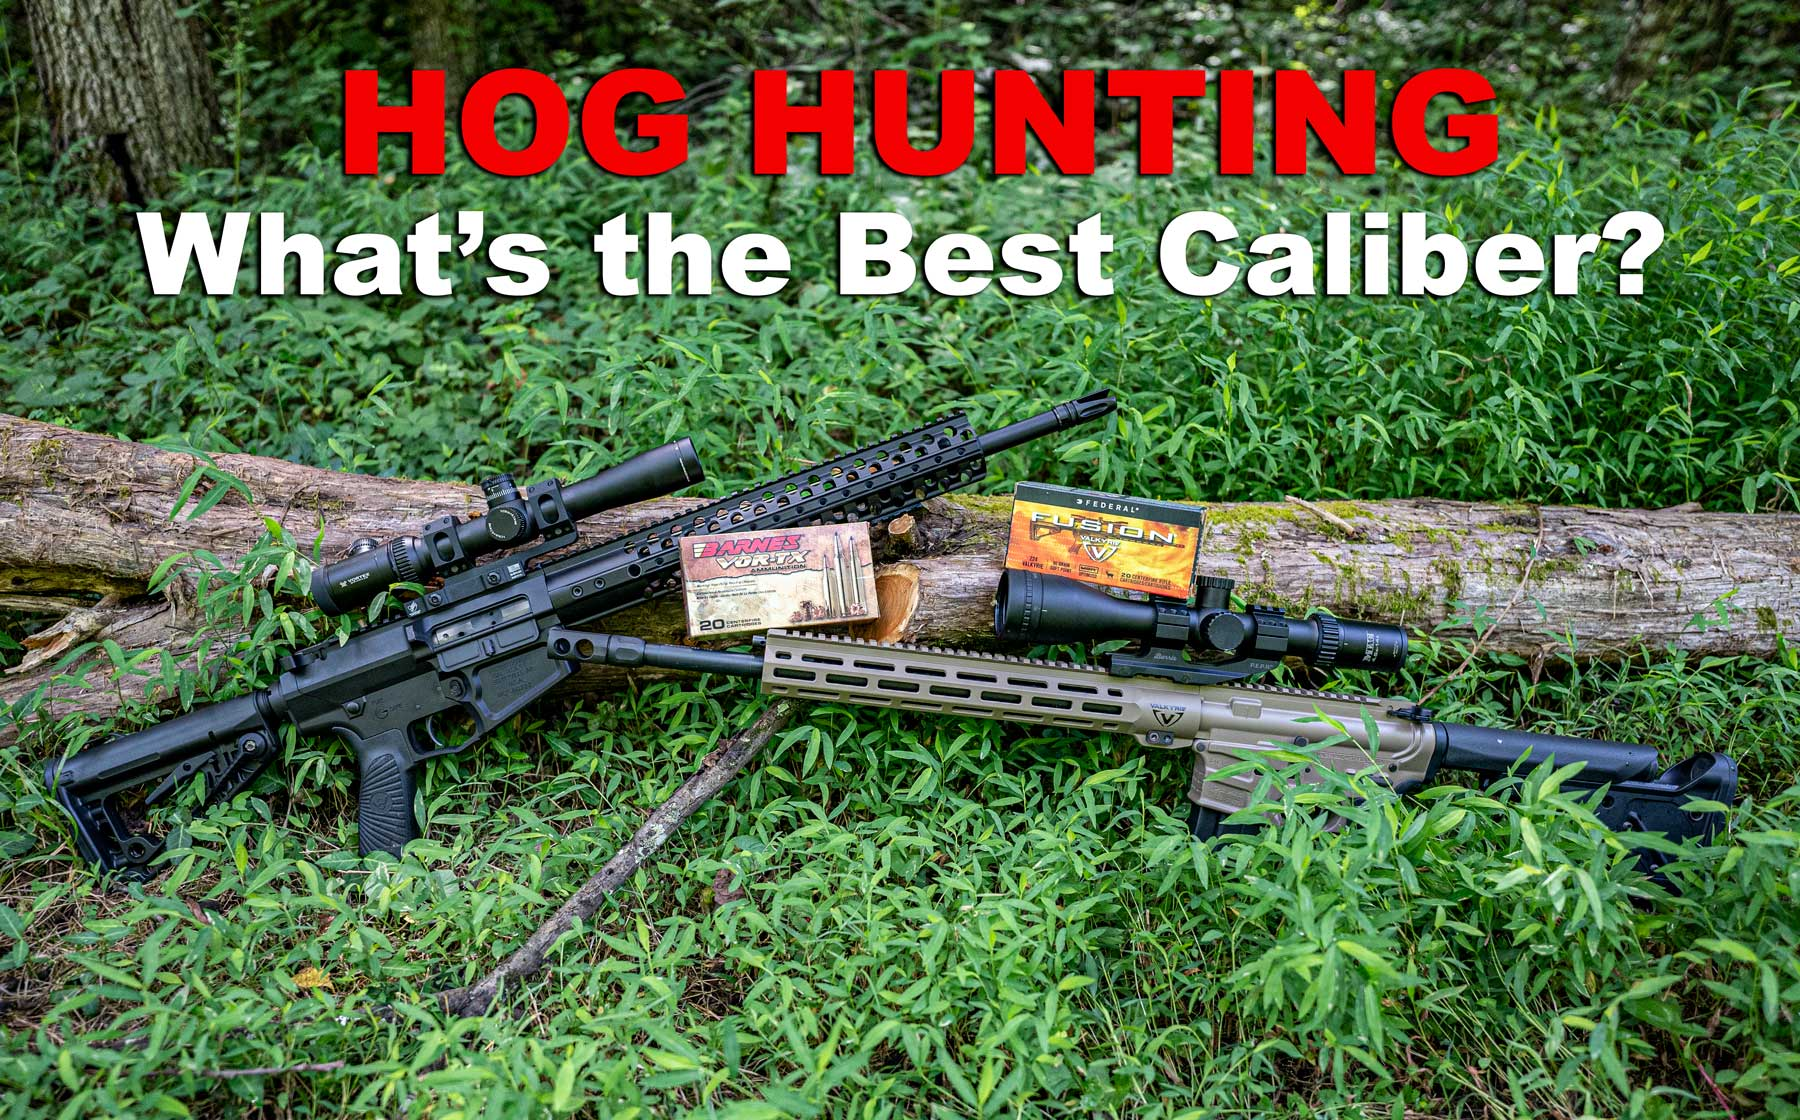 two of the best calibers for hog hunting in the woods